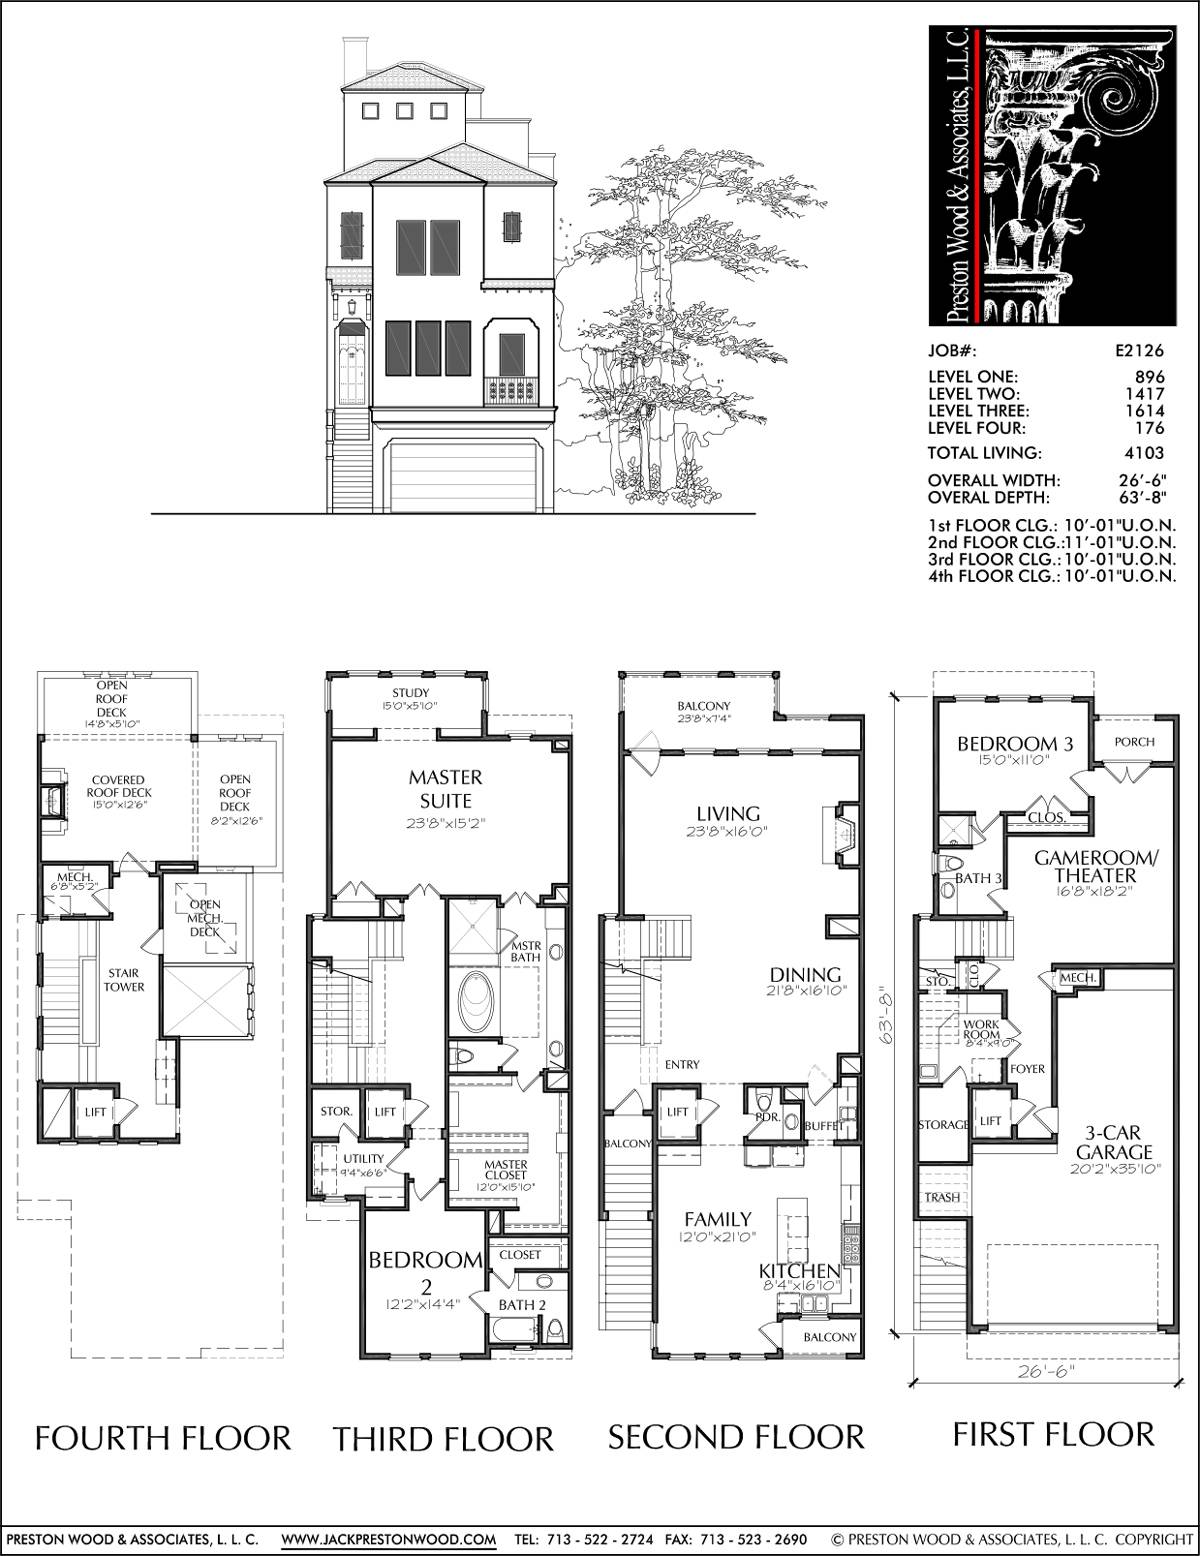 House Plan Townhome Floor Plans Designs Donald